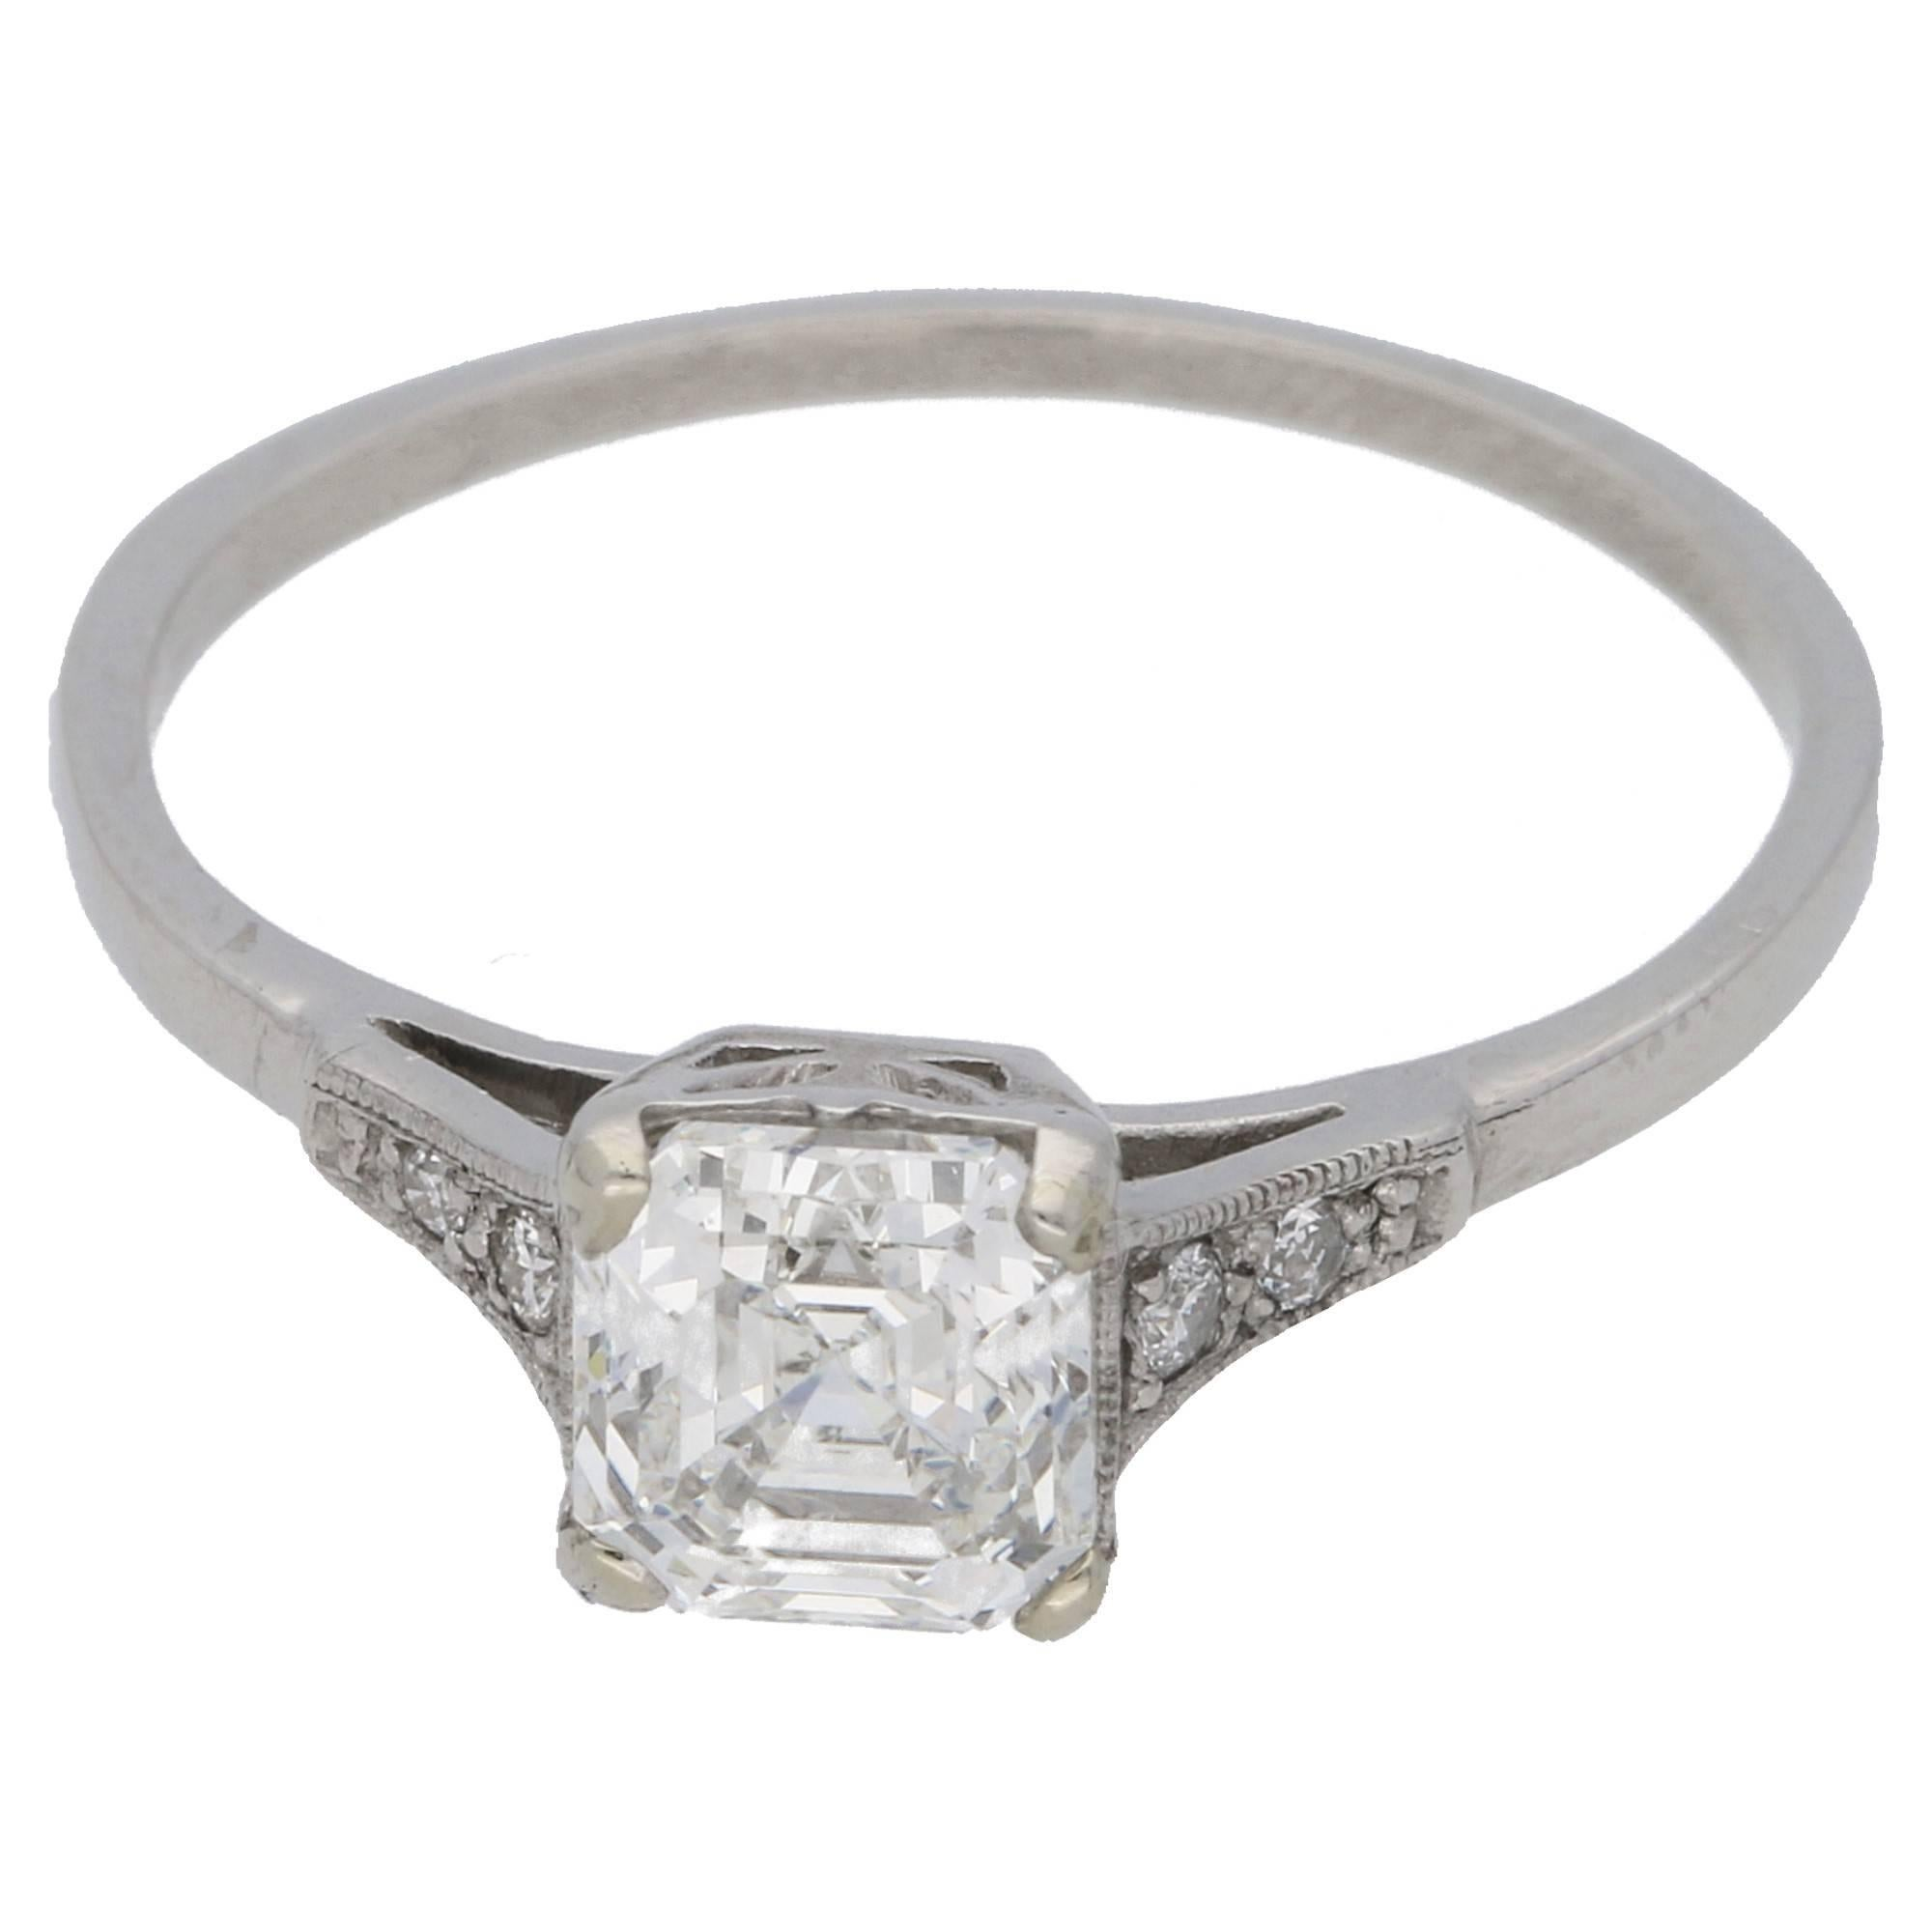 j in diamond asscher platinum rings id carat royal cut for jewelry master ring solitaire gia sale at certified asher